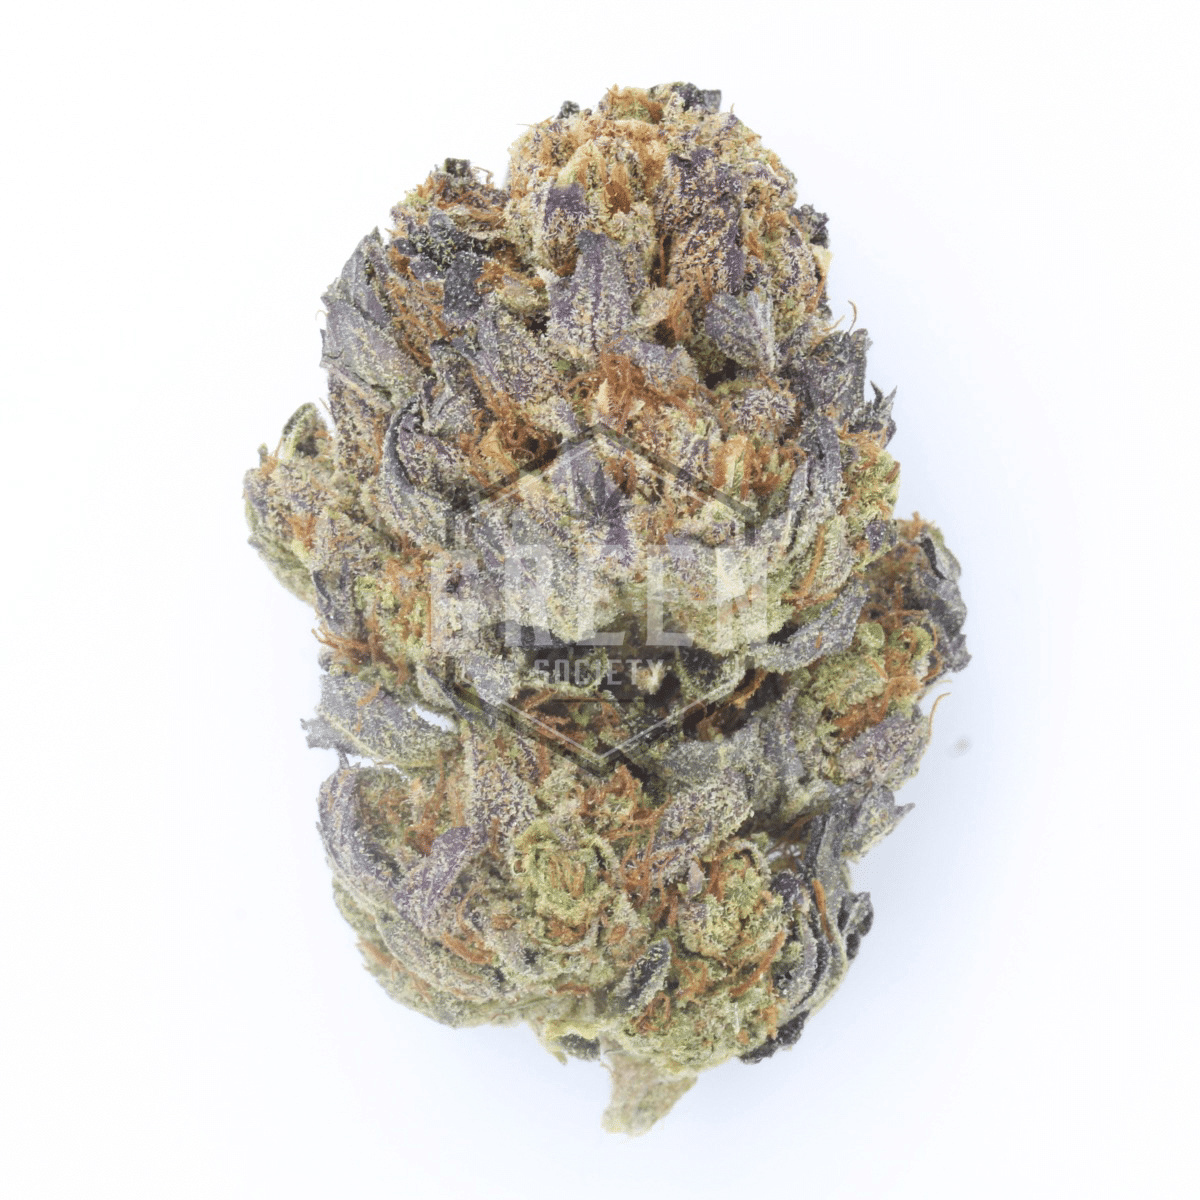 Black Tuna Kush (28 GRAM SPECIAL) by Green Society - Image © 2018 Green Society. All Rights Reserved.